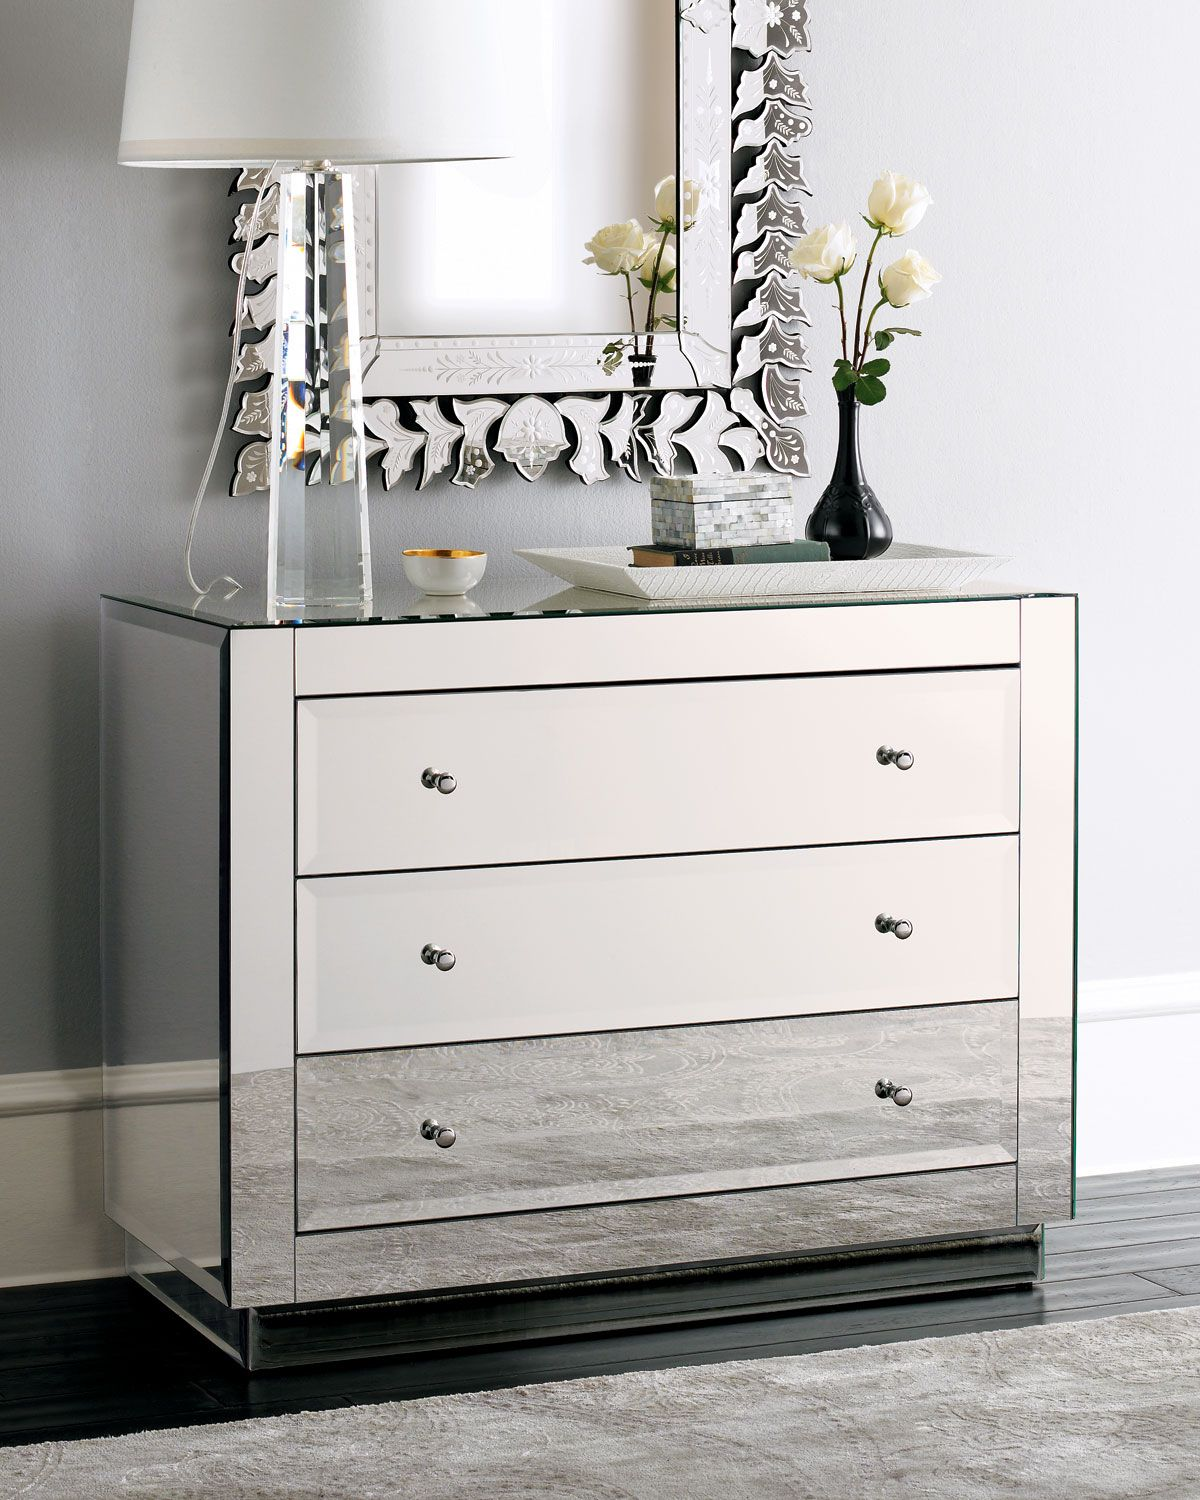 Pin By Yz99 On Furniture In 2021 Mirrored Bedroom Furniture Home Decor Mirrored Furniture